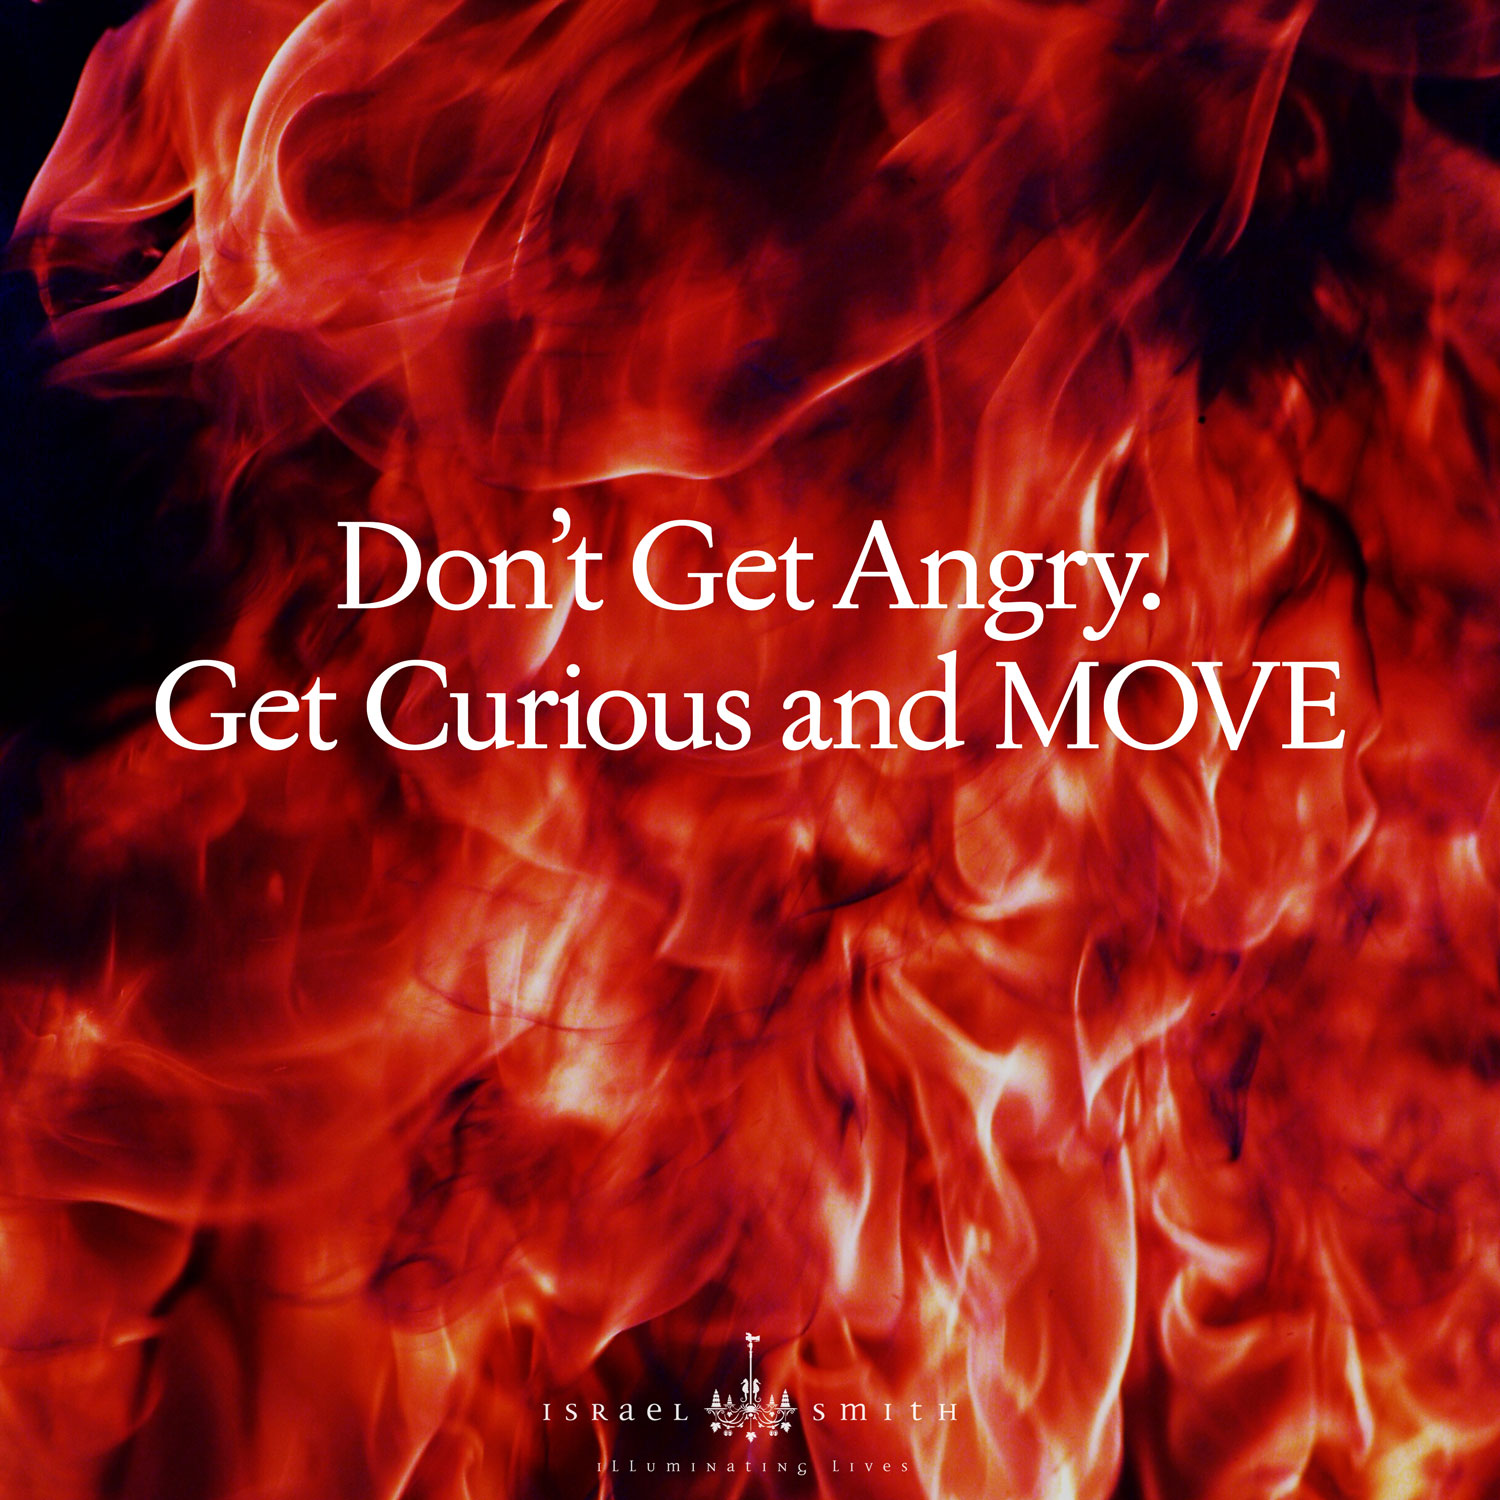 Don't Get Angry. Get Curious and MOVE